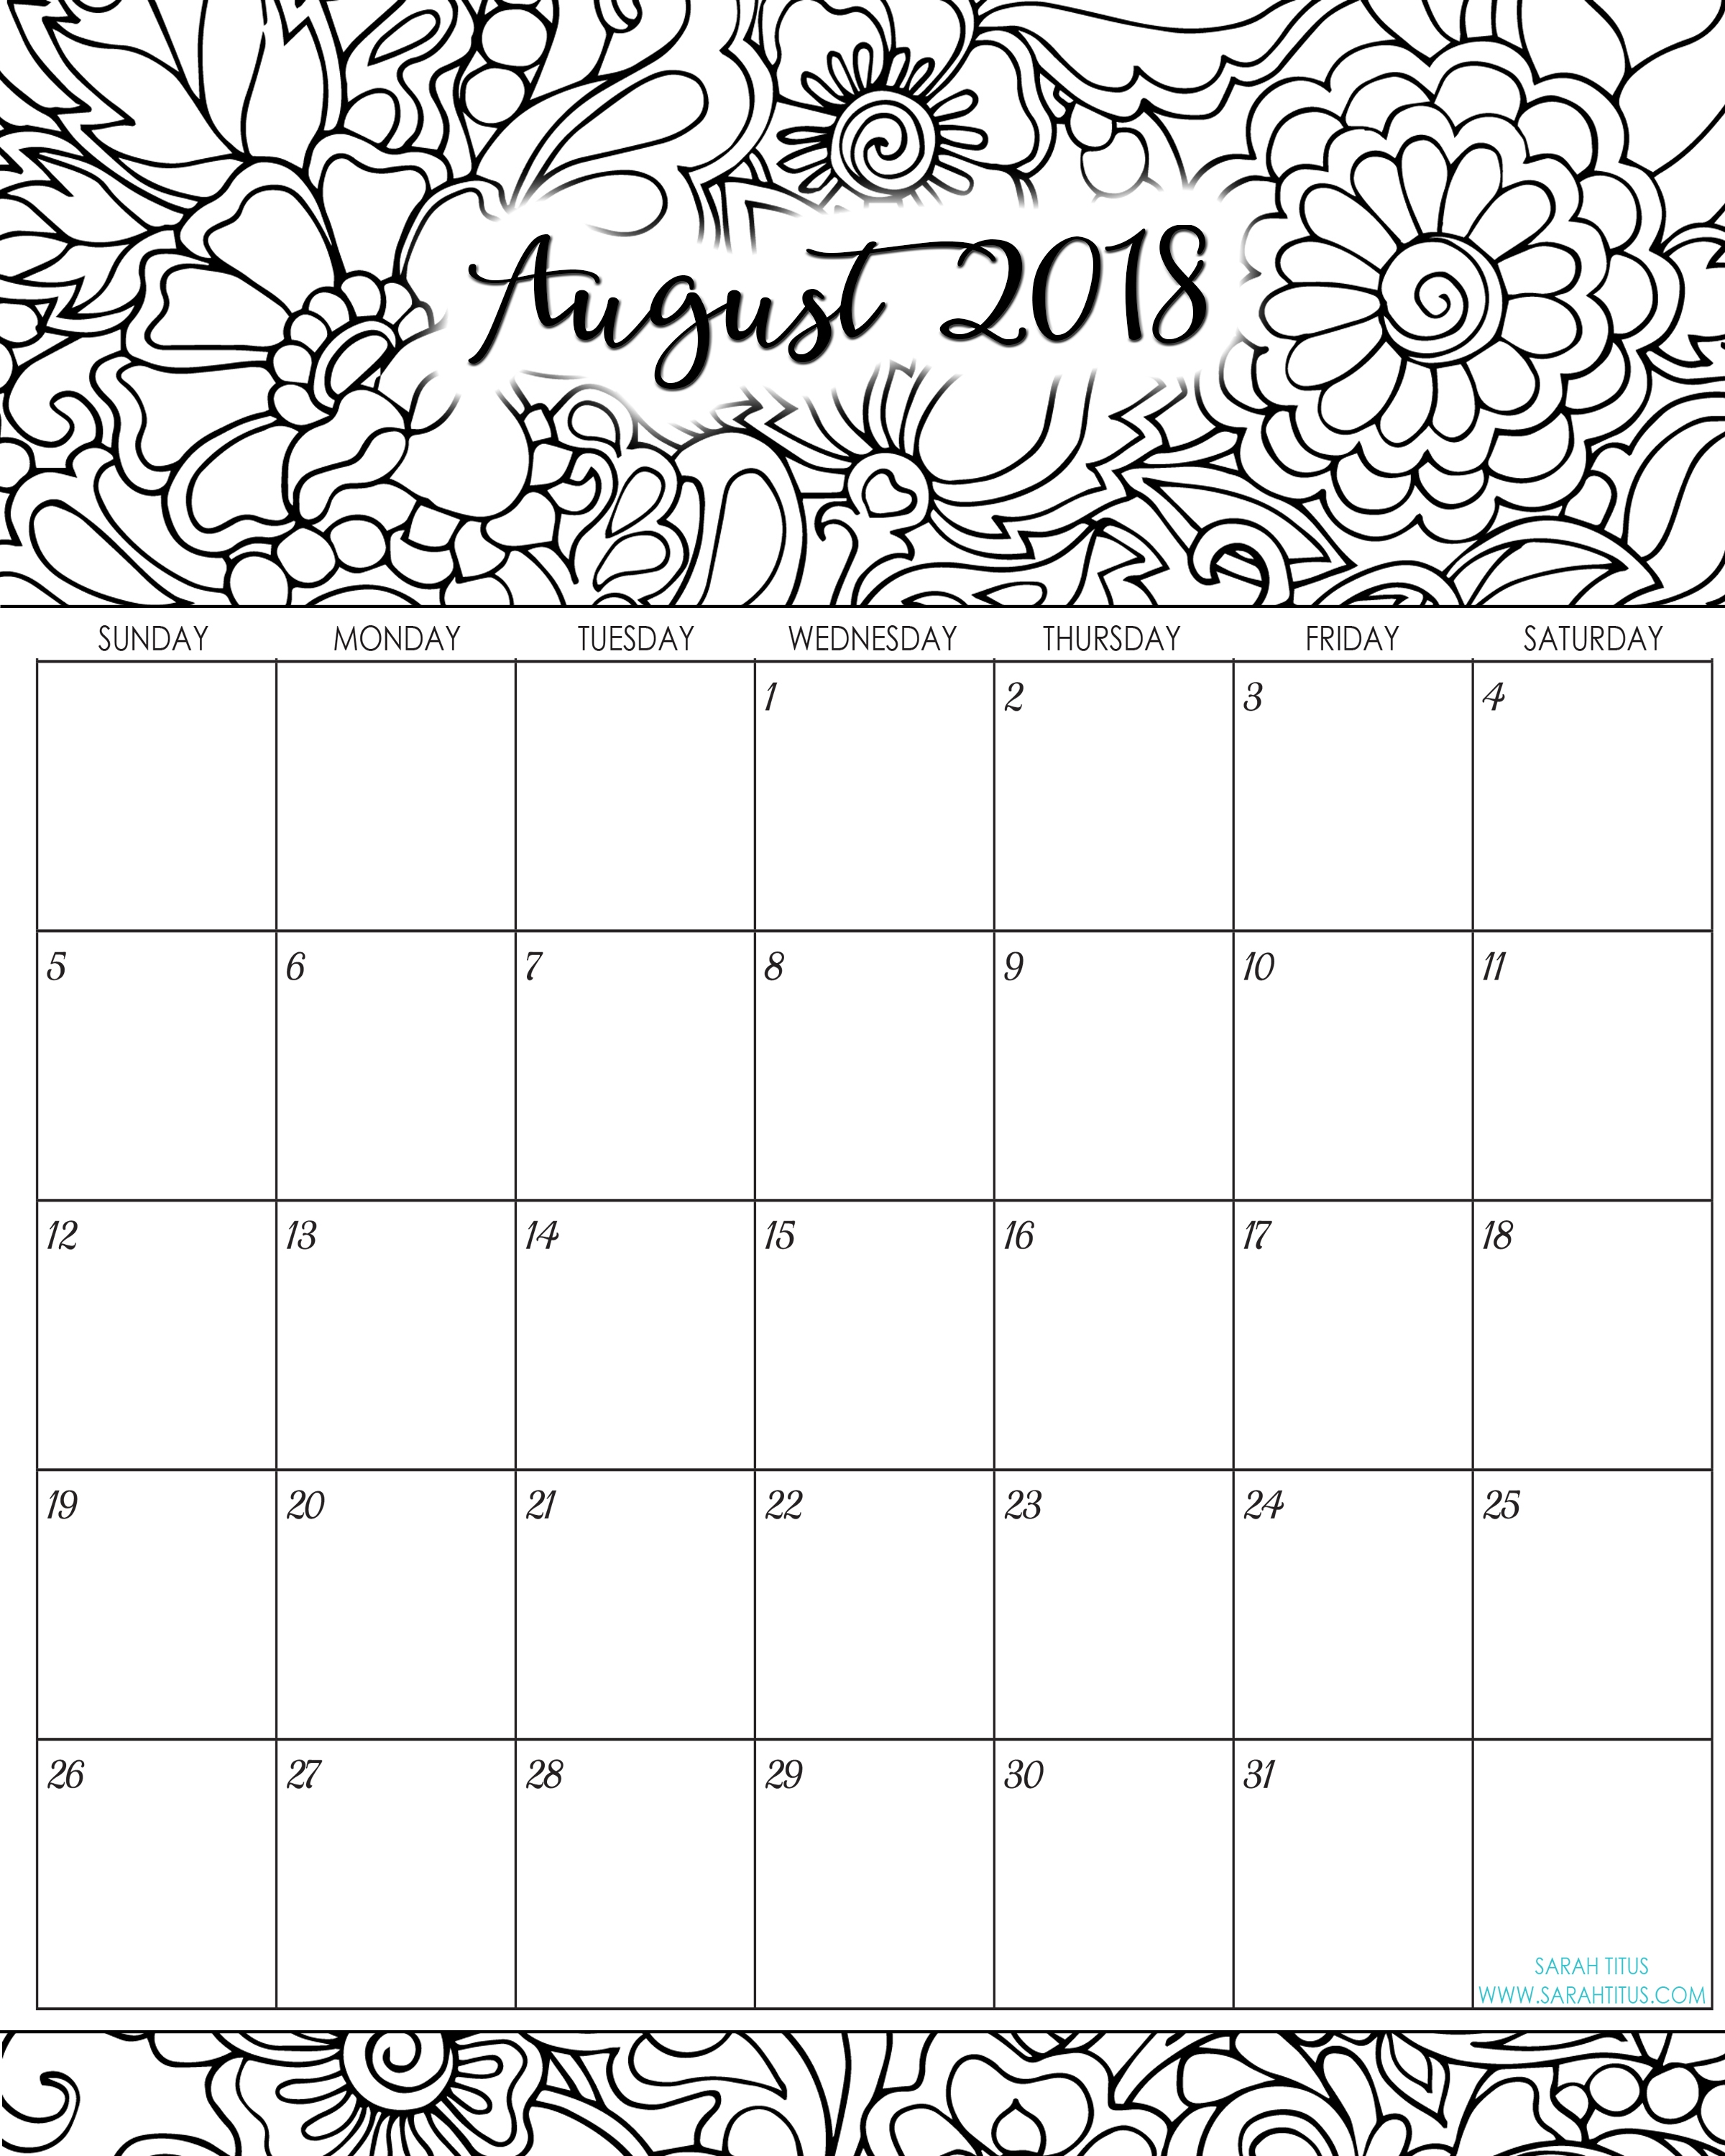 unique august 2018 calendar printable cute  Cute Printable Calendar For August 2018 erdferdf